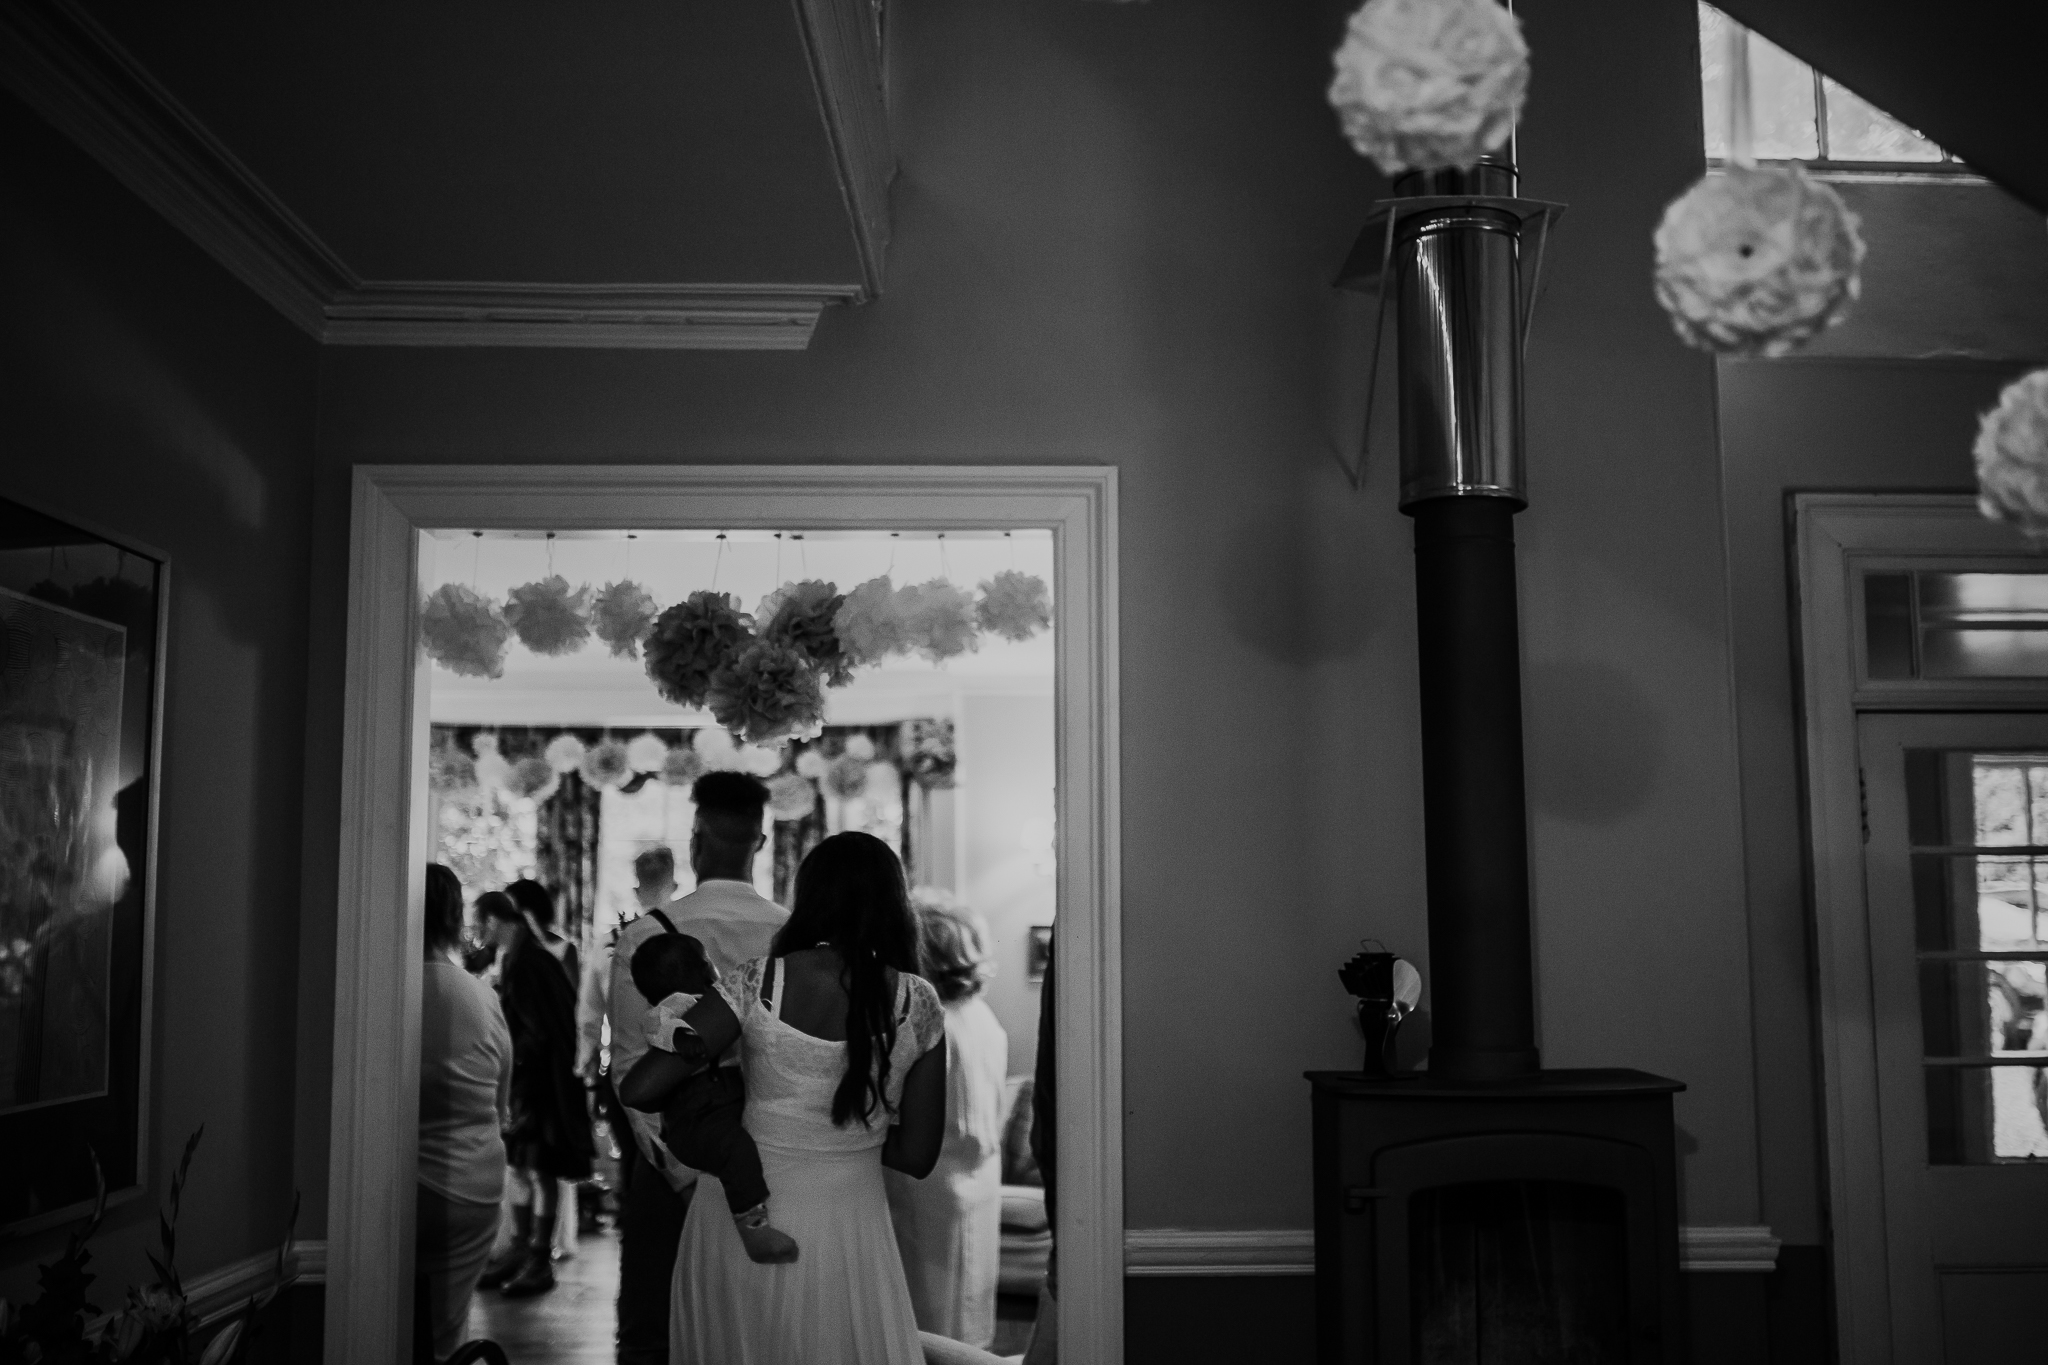 Victoria & Jamie - WeddingsbyQay - Wedding Photographer (59 of 209).jpg